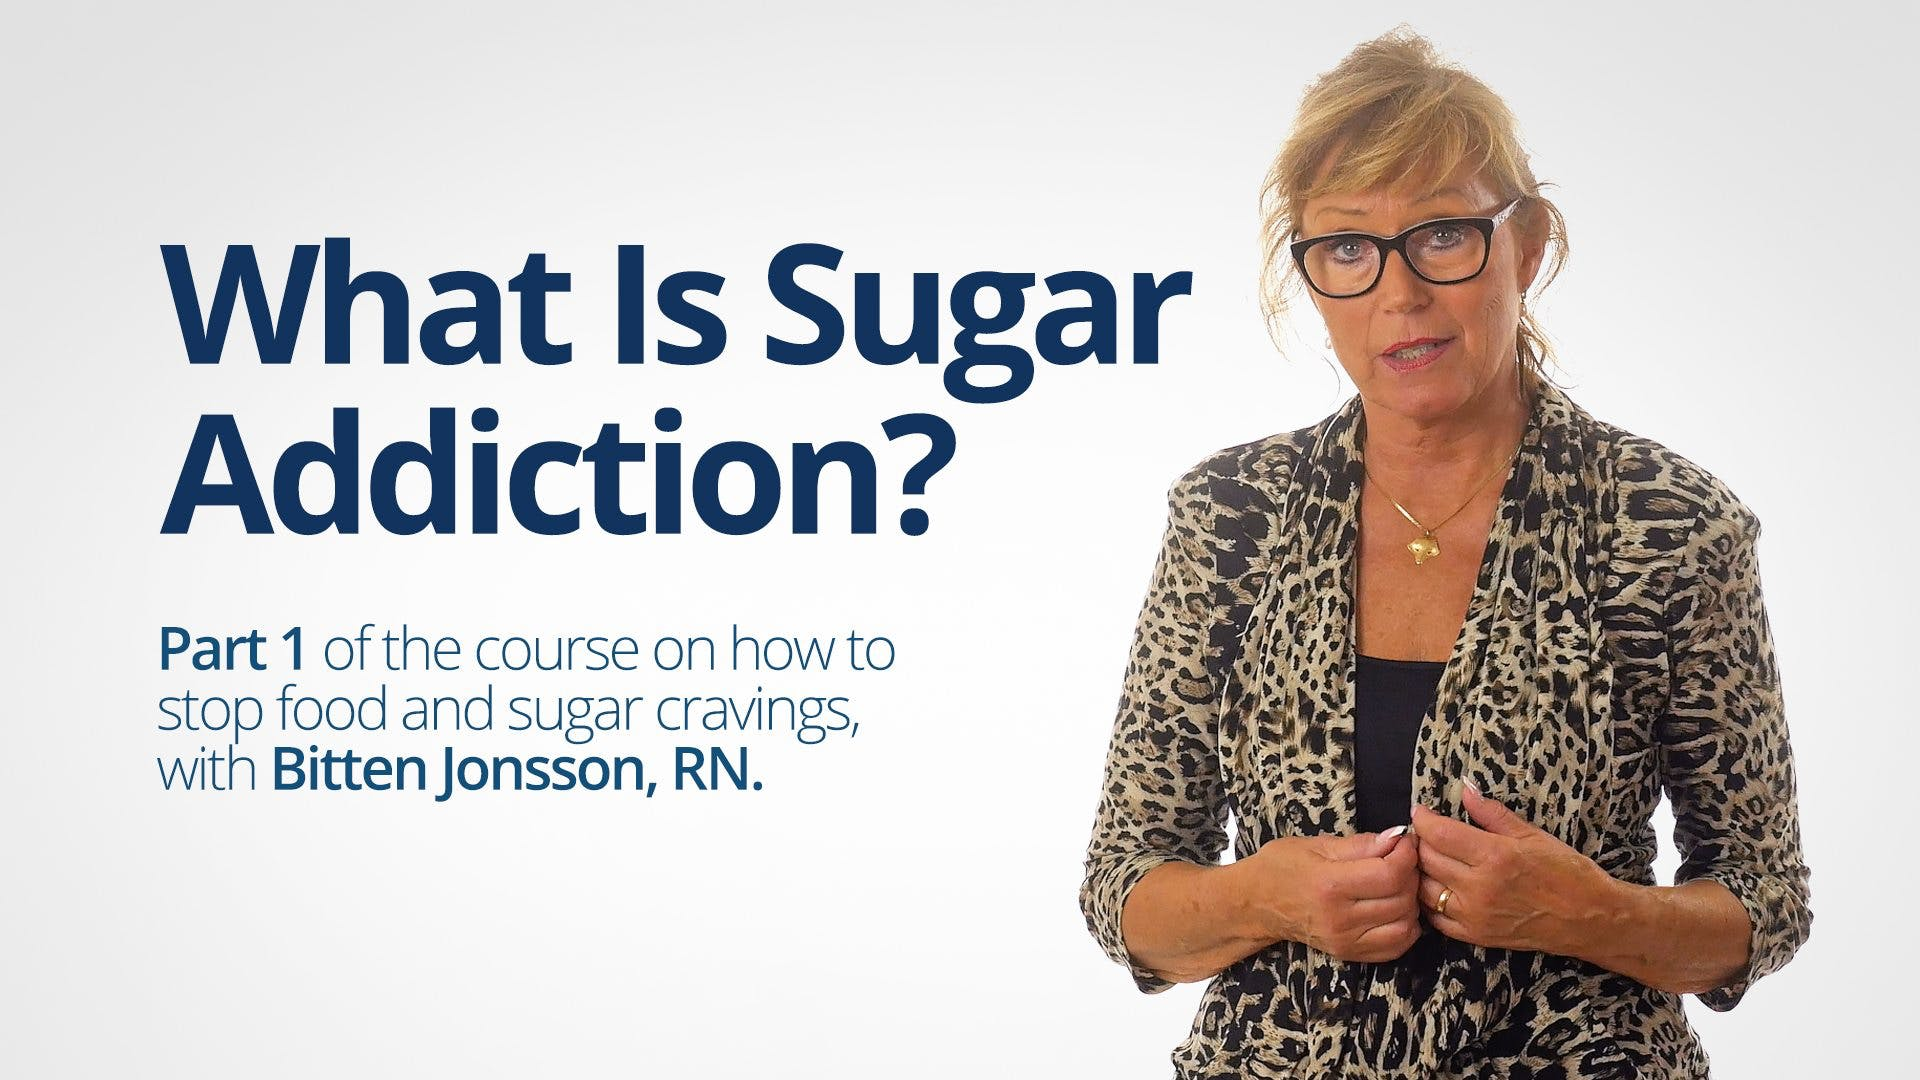 What Is Sugar Addiction? – Bitten Jonsson